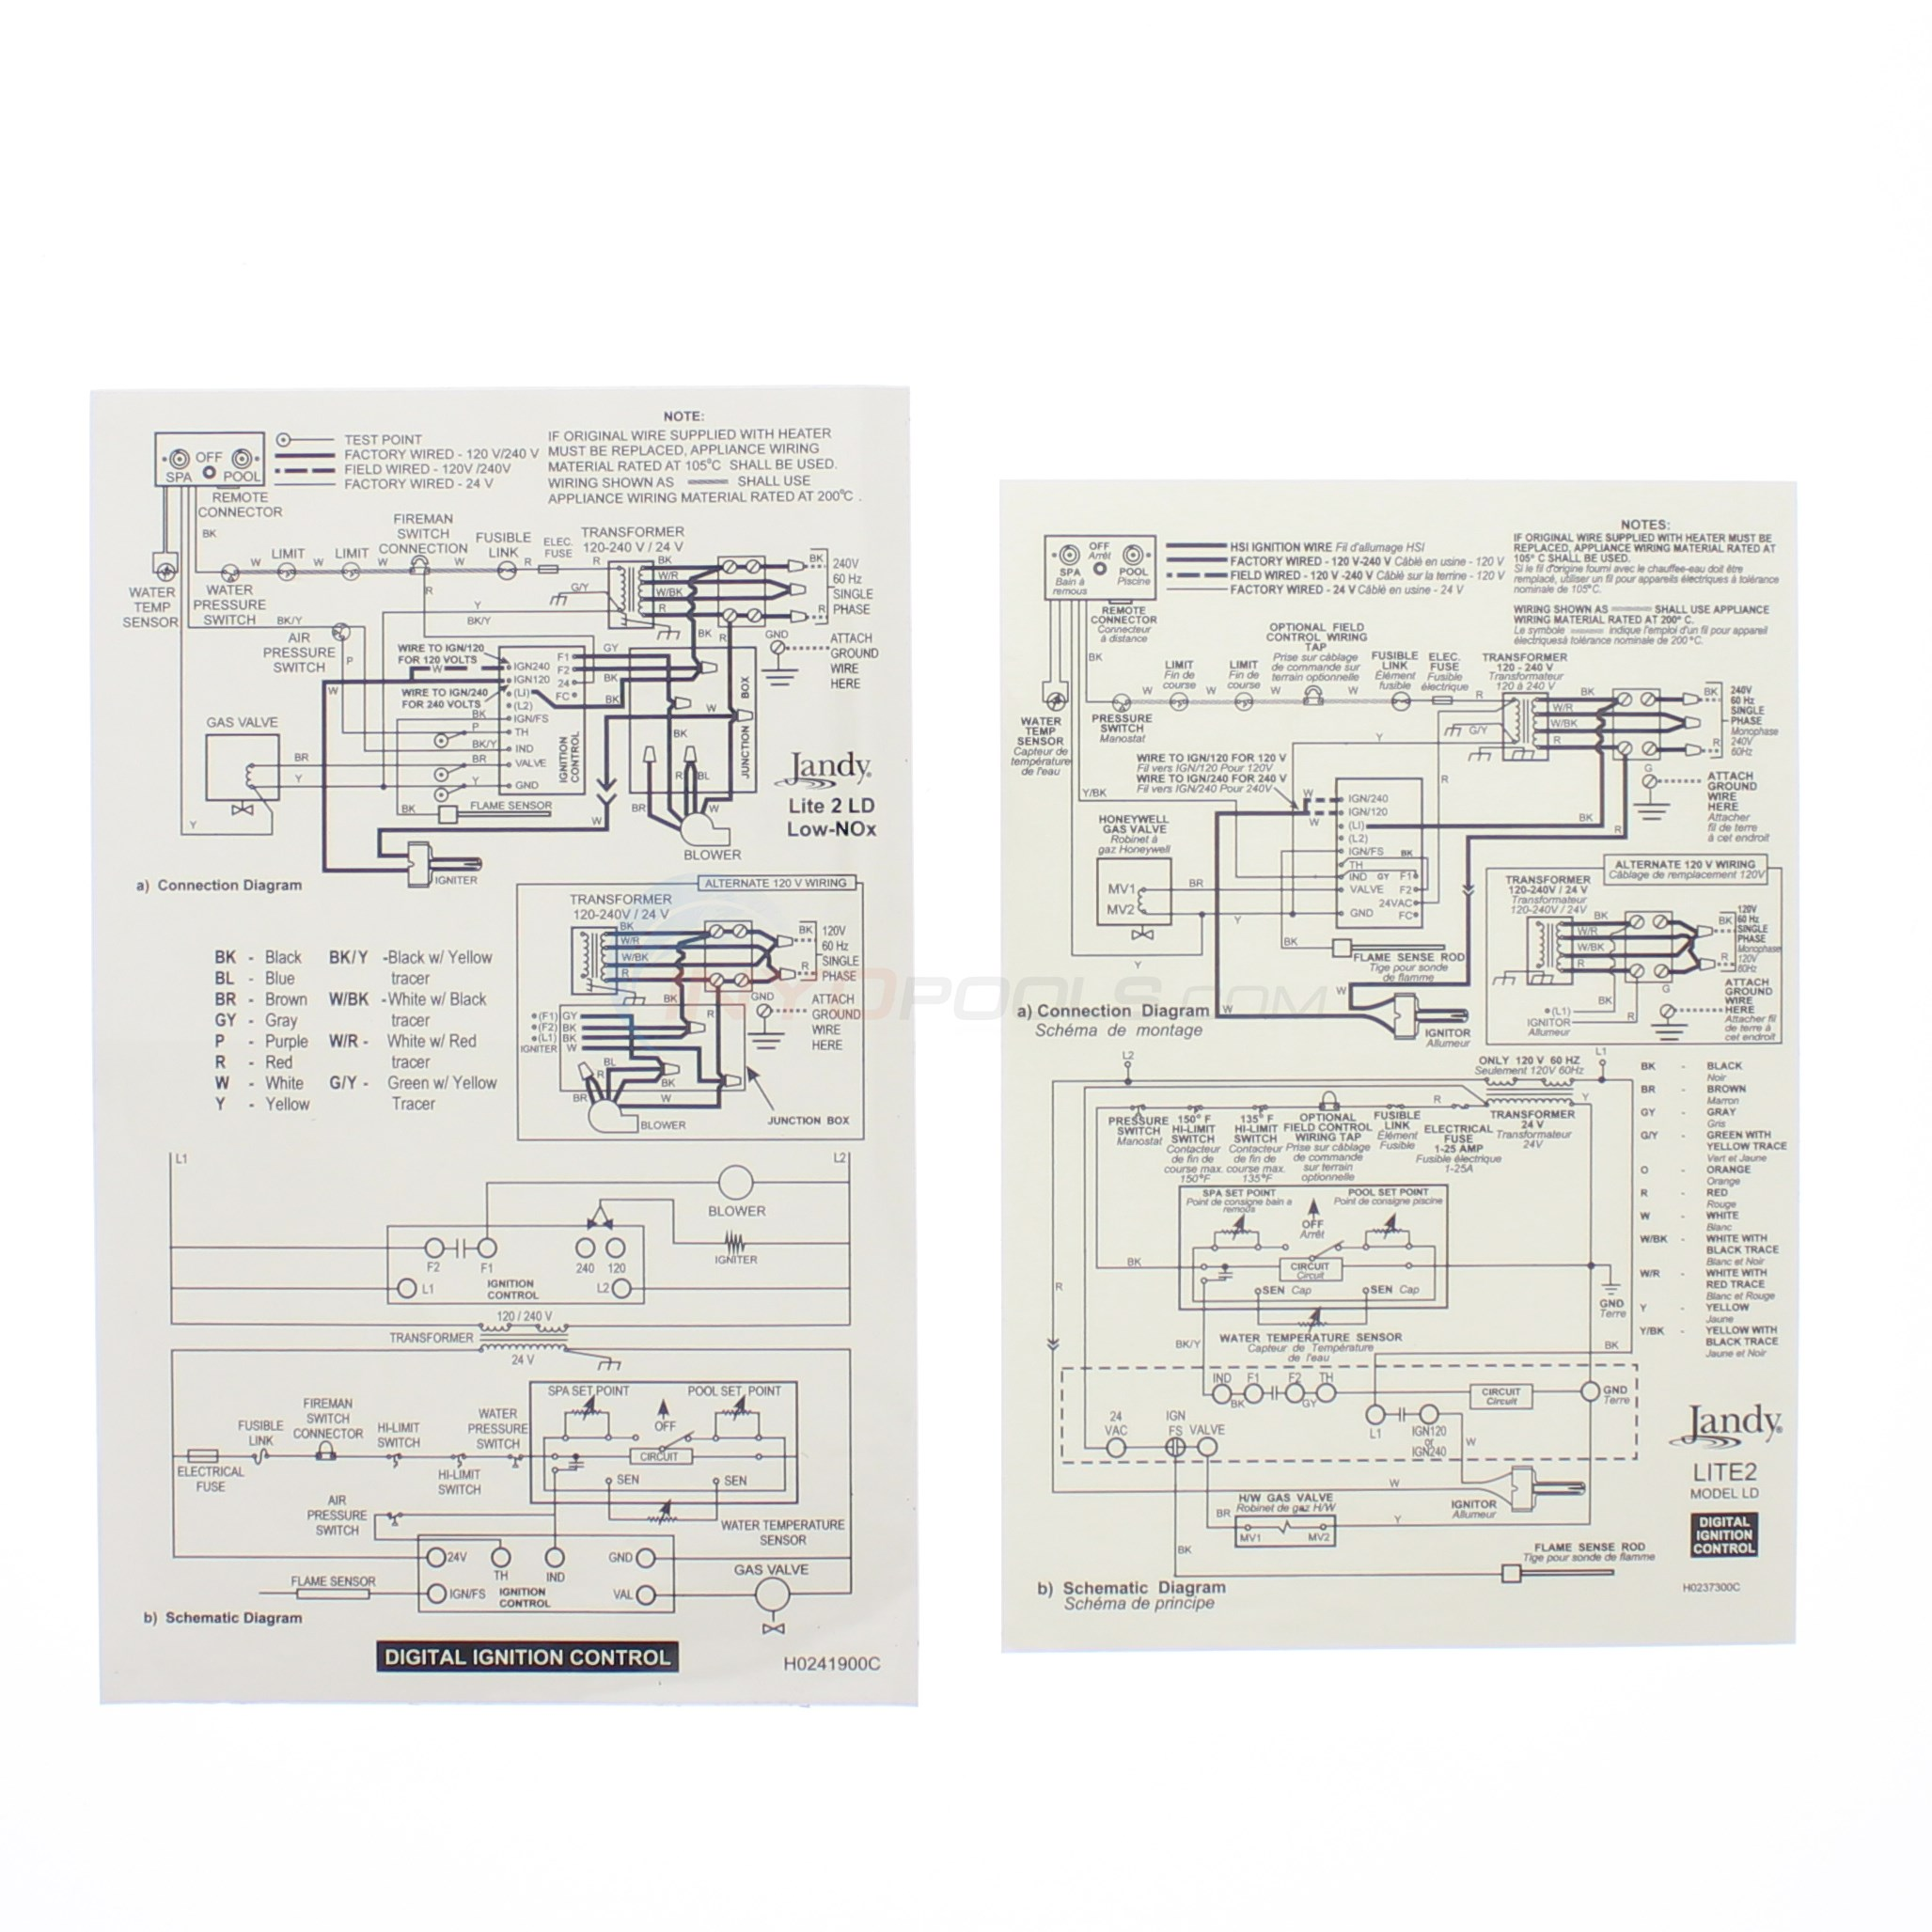 zodiac 6200 0301?format=jpg&scale=both&anchor=middlecenter&autorotate=true&mode=pad&width=650&height=650 zodiac ignition control assembly (r0408100) inyopools com fenwal ignition module wiring diagram at soozxer.org